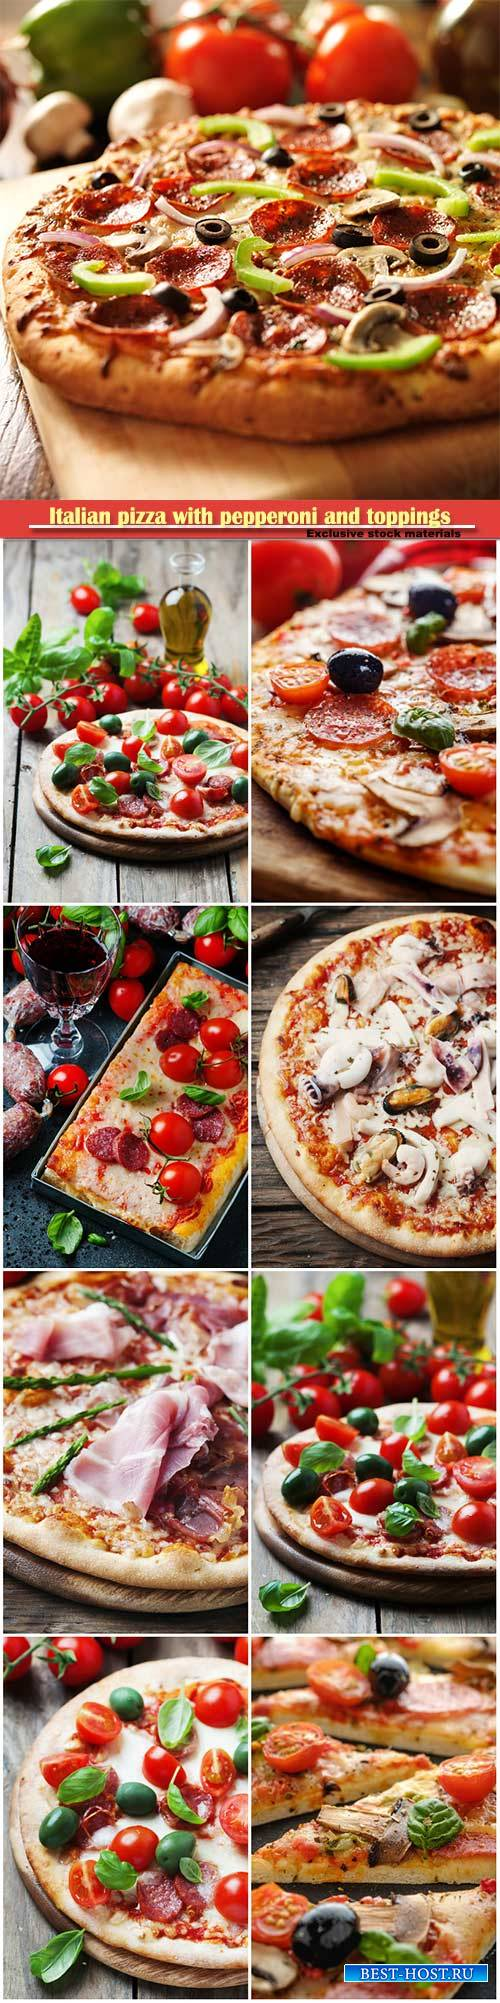 Italian pizza with pepperoni and toppings